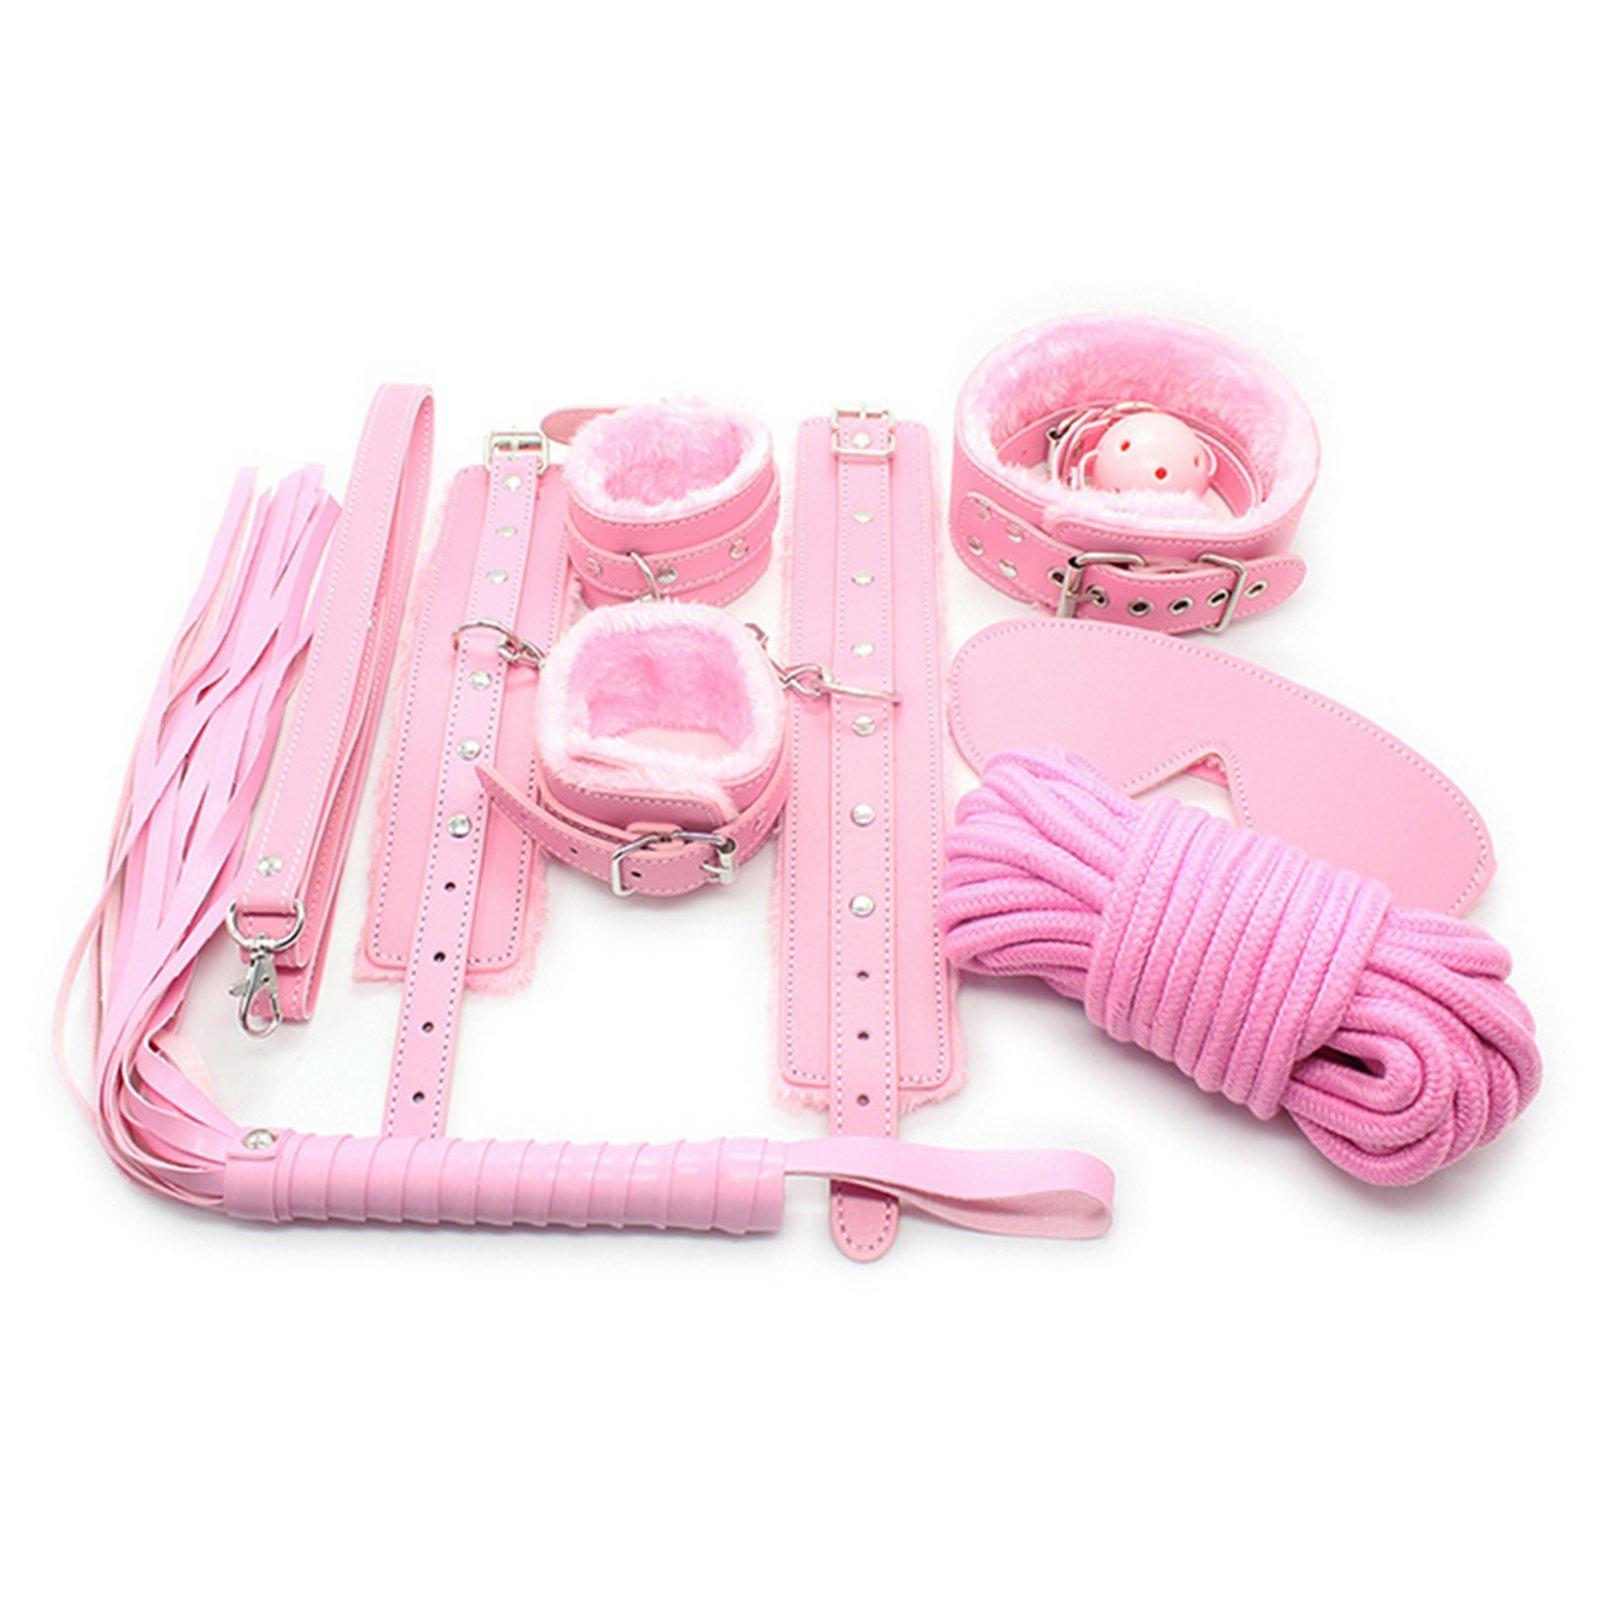 JIAHAO 7pcs Game Leather Bondage Restraint Set Blindfold Collar Gag Handcuffs Pink